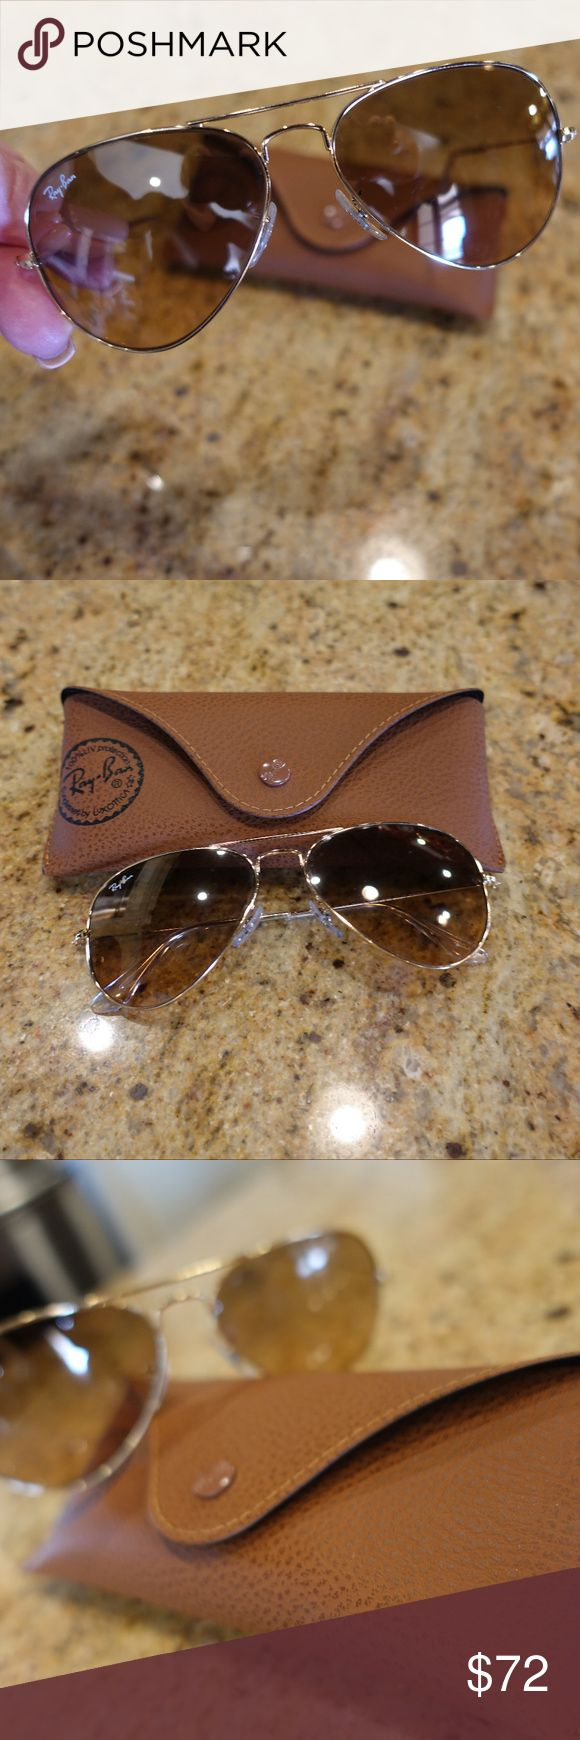 Ray Ban Classic Aviators RB3025 Large Frame Classic Ray Ban Aviators Large Frame RB3025 Light Brown Color. These are pre-owned with normal wear and tear but in great condition.  Comes with case Ray Ban Accessories Sunglasses